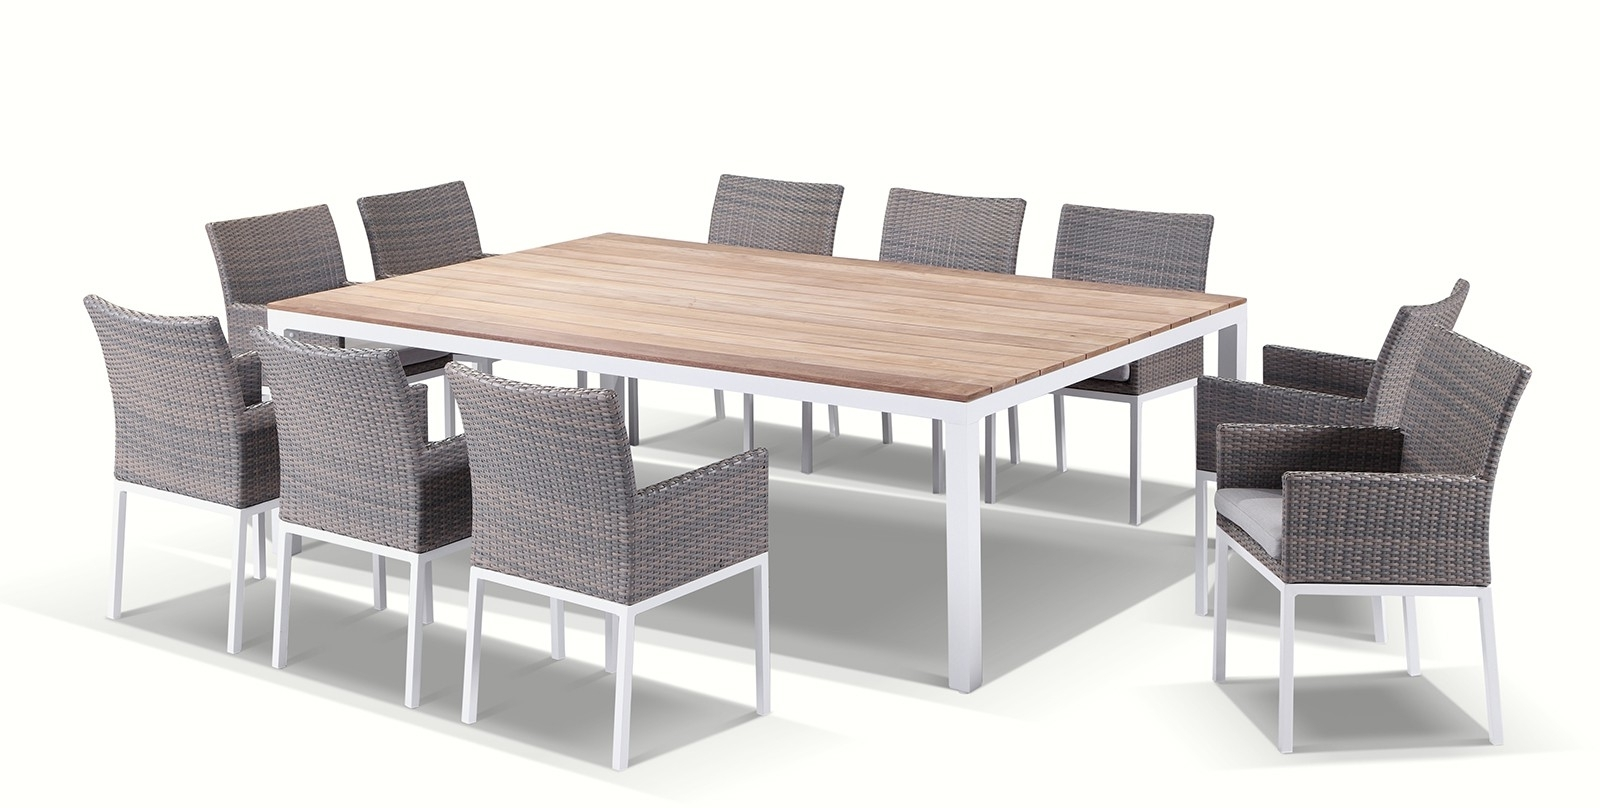 Bay Gallery With Regard To Trendy 10 Seat Dining Tables And Chairs (View 8 of 25)